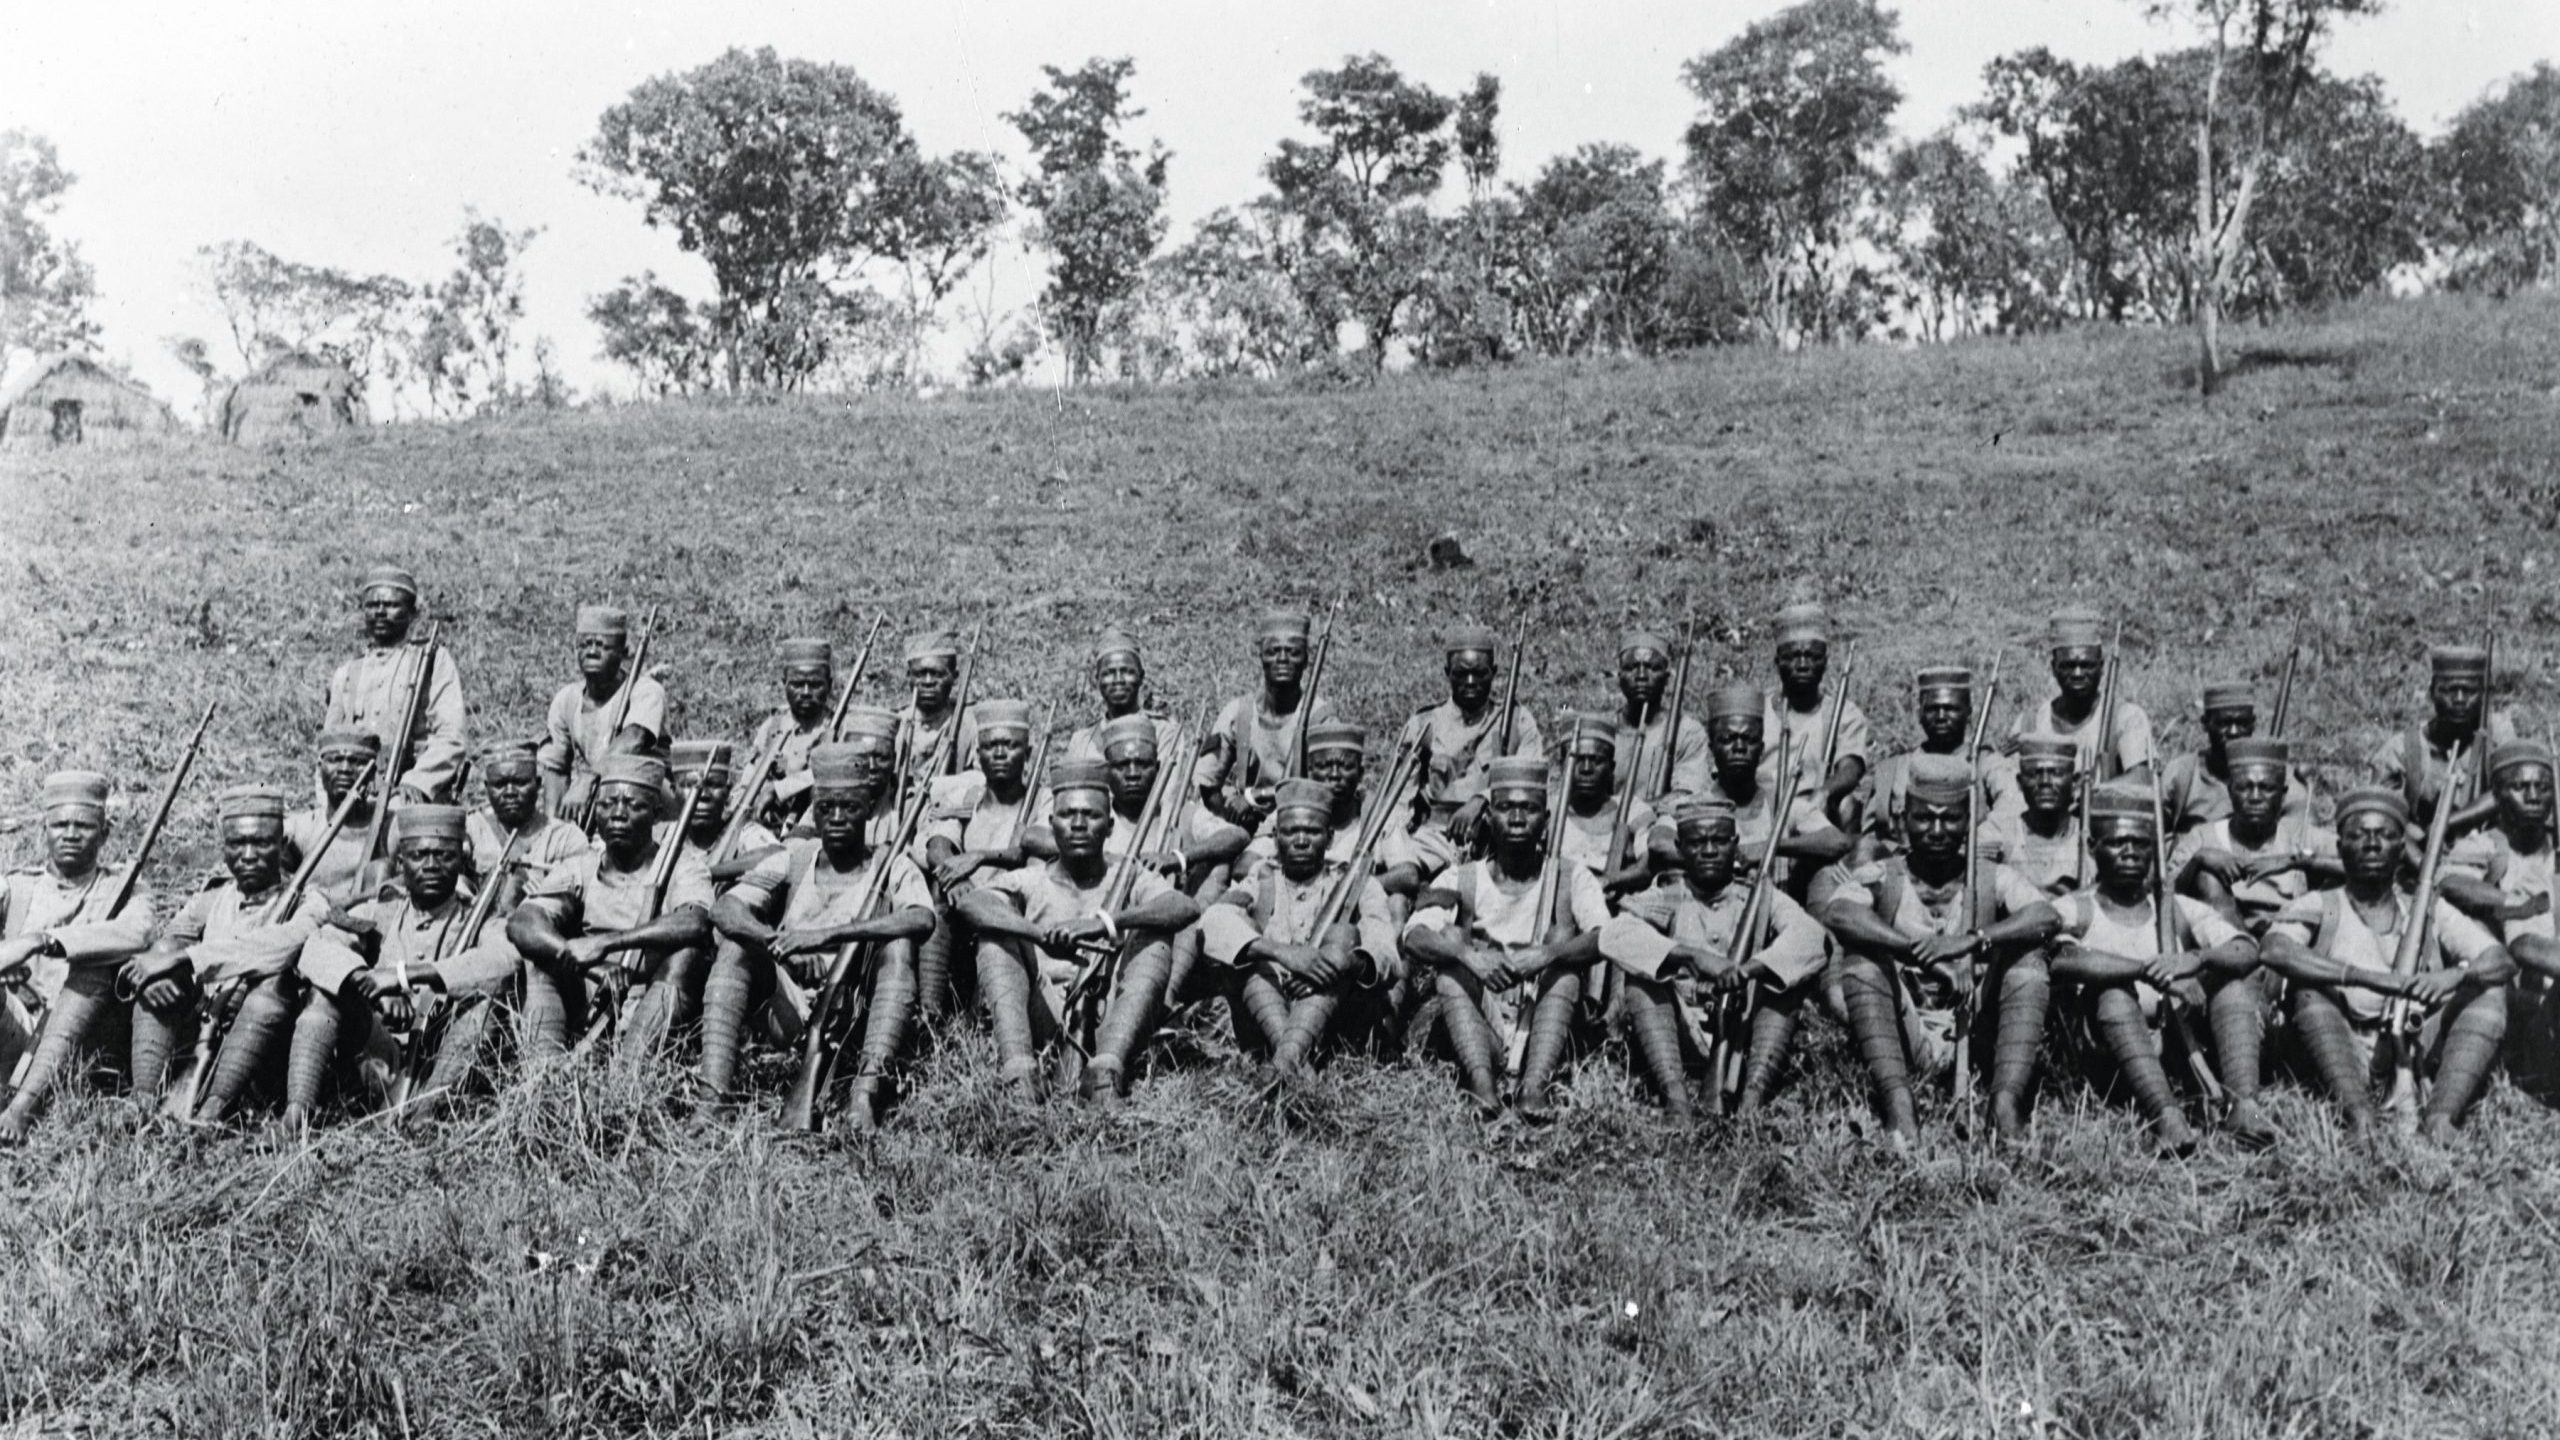 The King's African Rifles near Mssindyi, September 1917. The troop fought in the East Africa campaign. They are among hundreds of thousands of soldiers whose sacrifice has not been properly commemorated